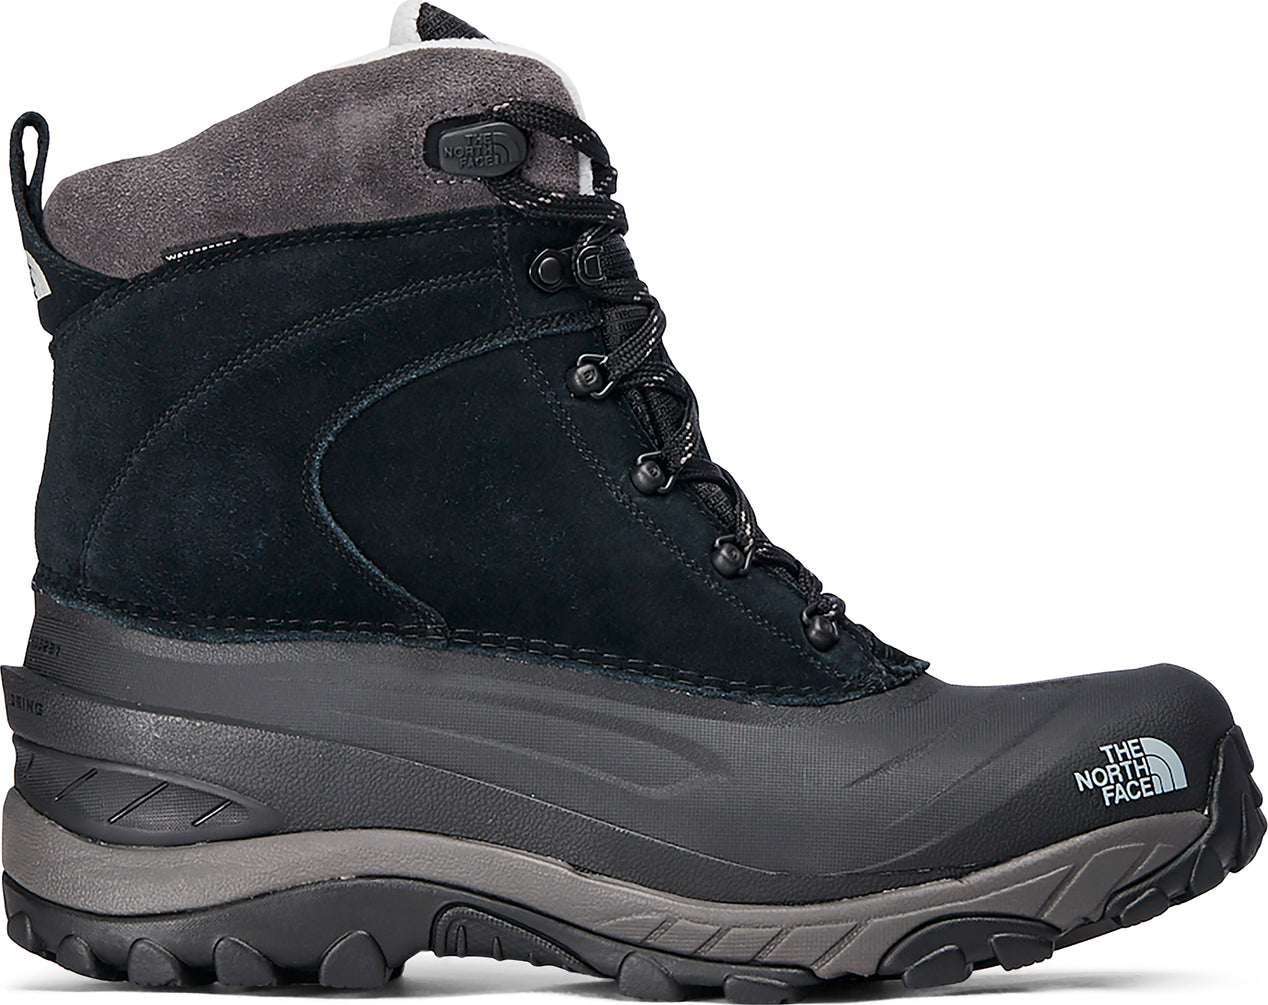 a189a68eef79 The North Face Men s Chilkat Iii Winter Boots